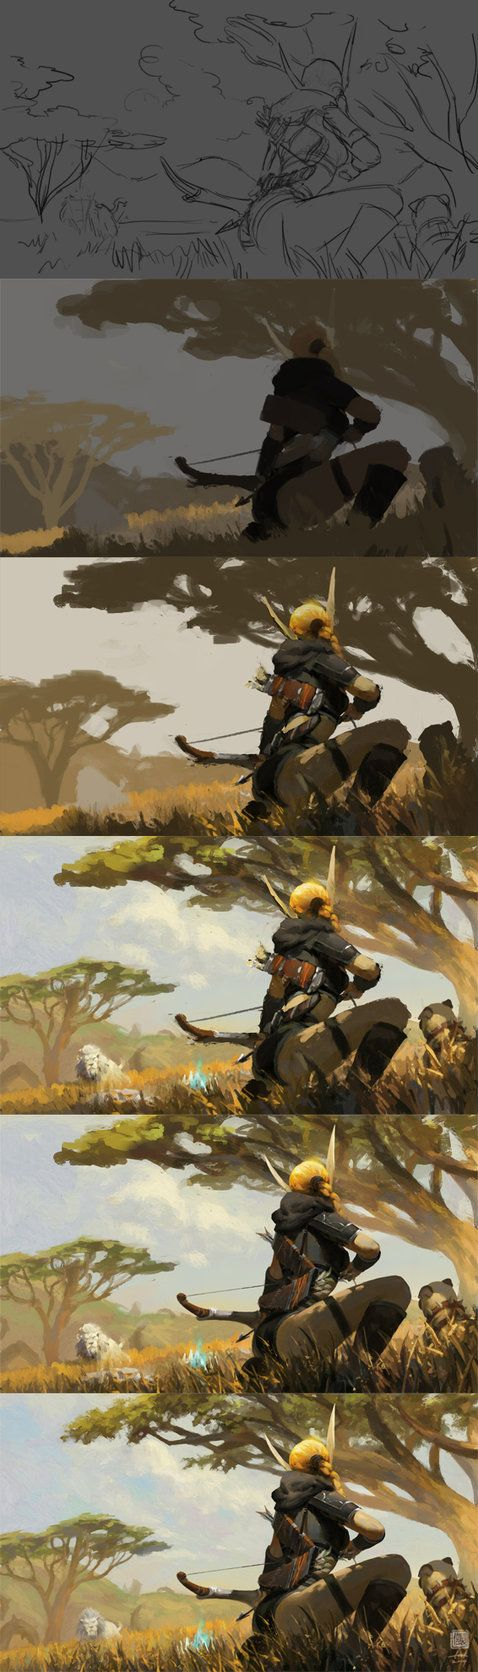 The painting process of Echeyakee, the Whitemist by 6kart on deviantART